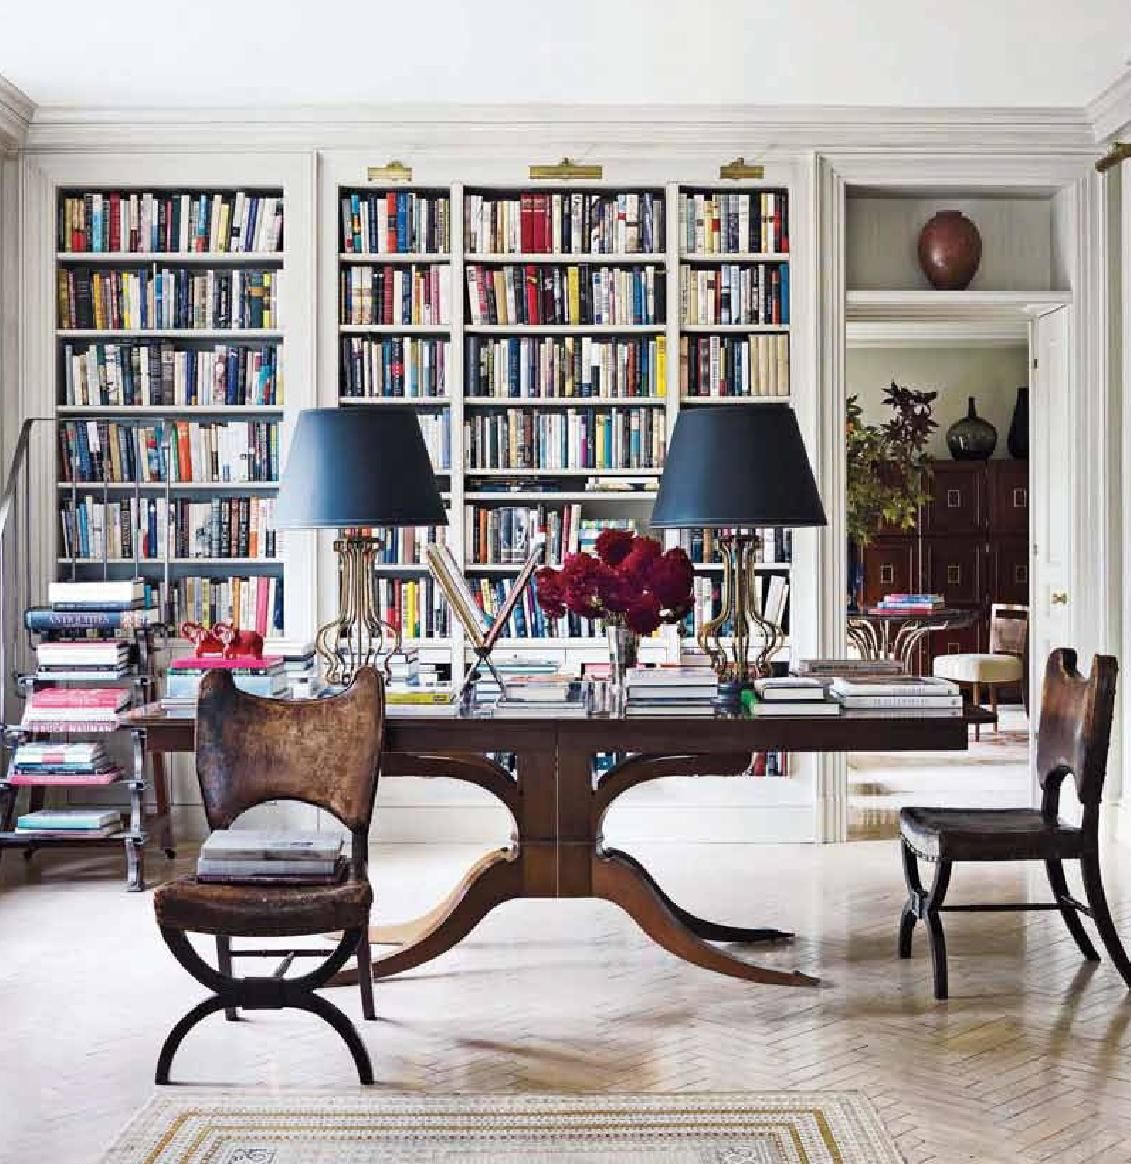 Zeitschriften Aufbewahrung Bibliothek Elle Decor The Height Of Style Home Libraries